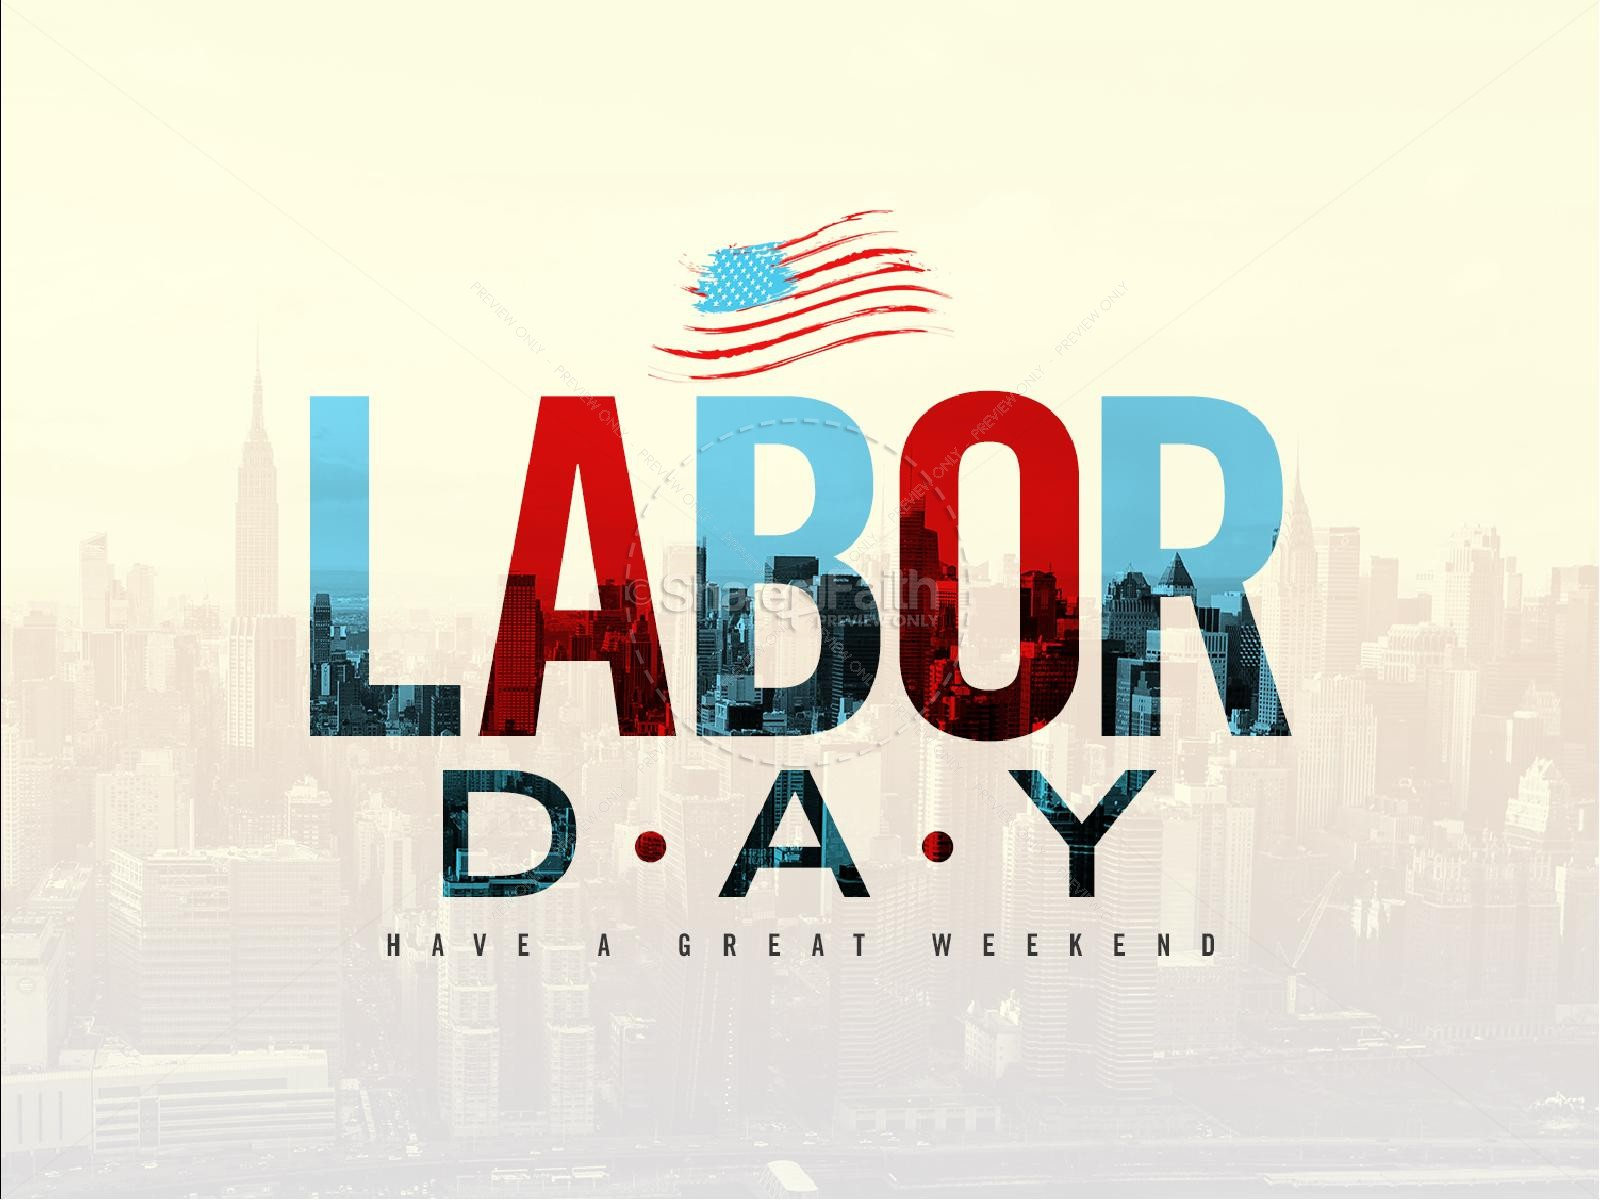 Christian Labor Day Images